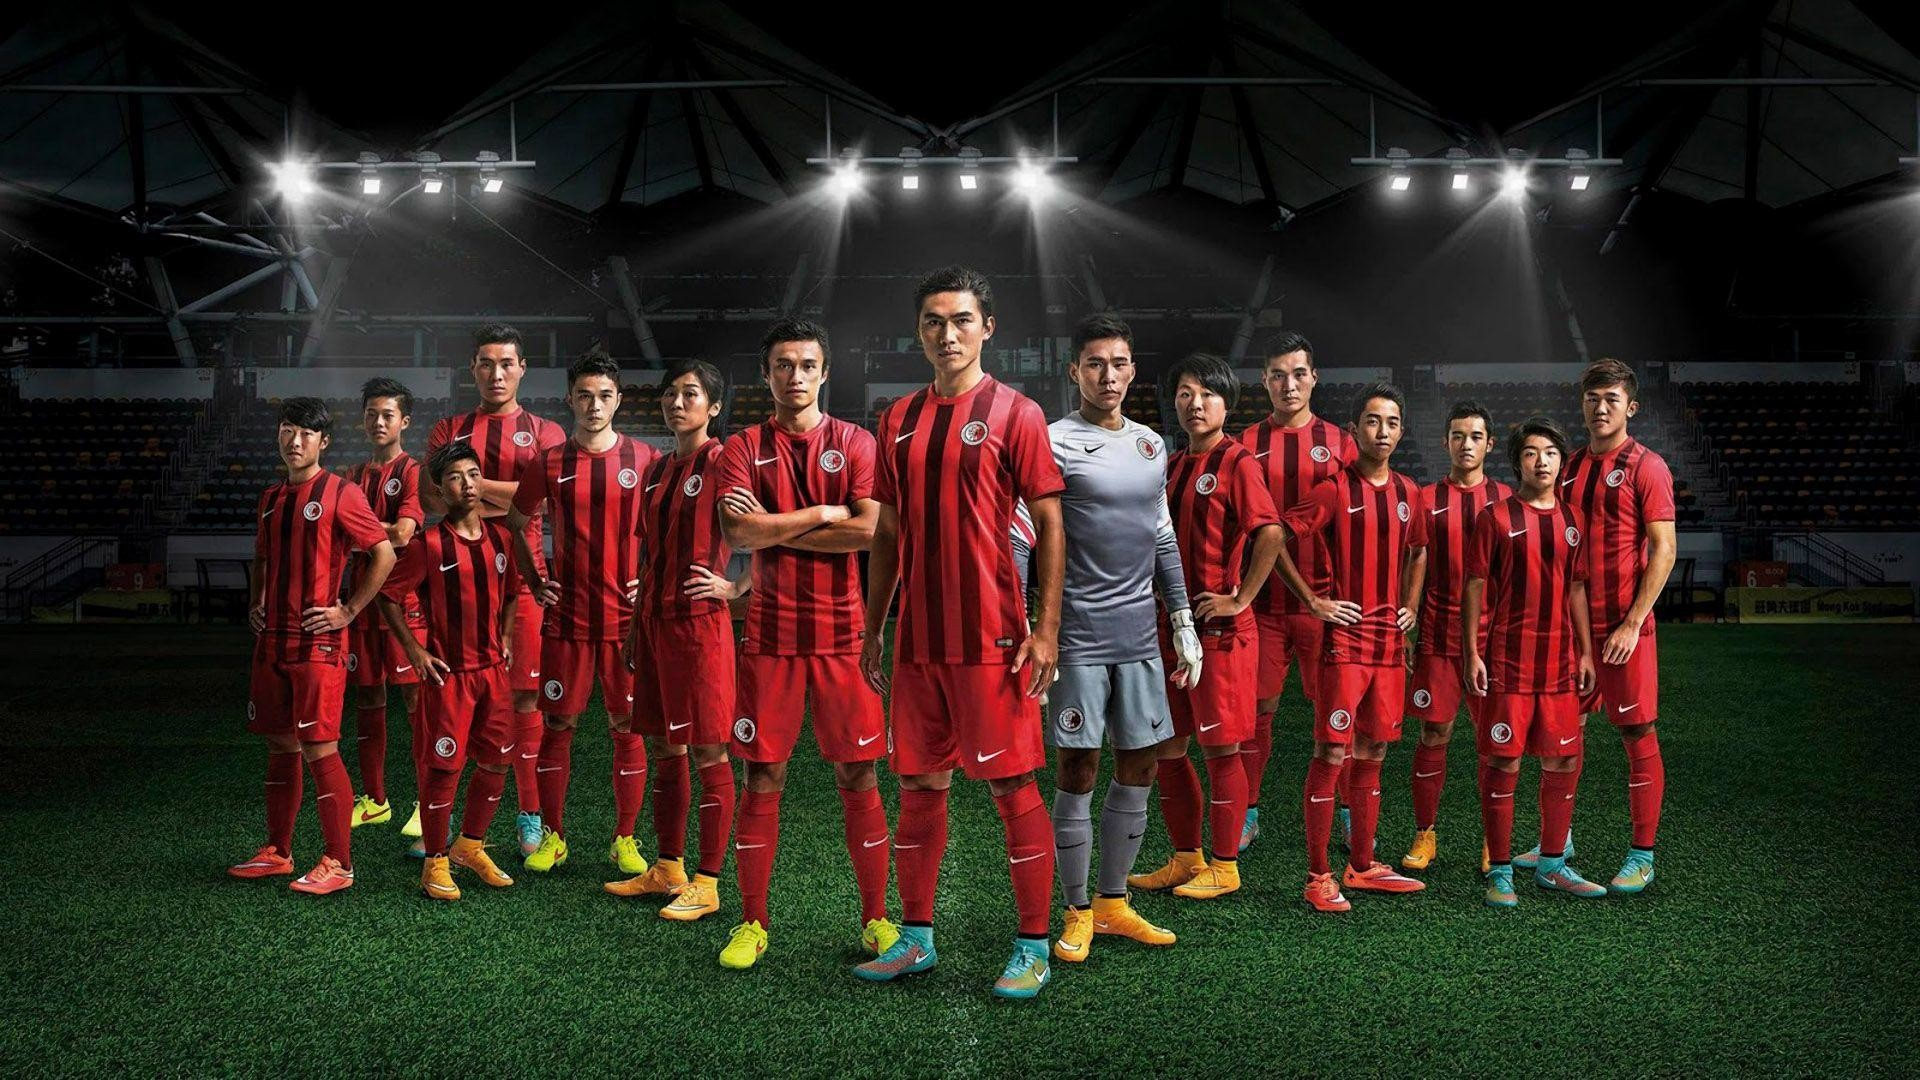 1920x1080 Nike-Soccer-Cave-wallpaper-wp40010288